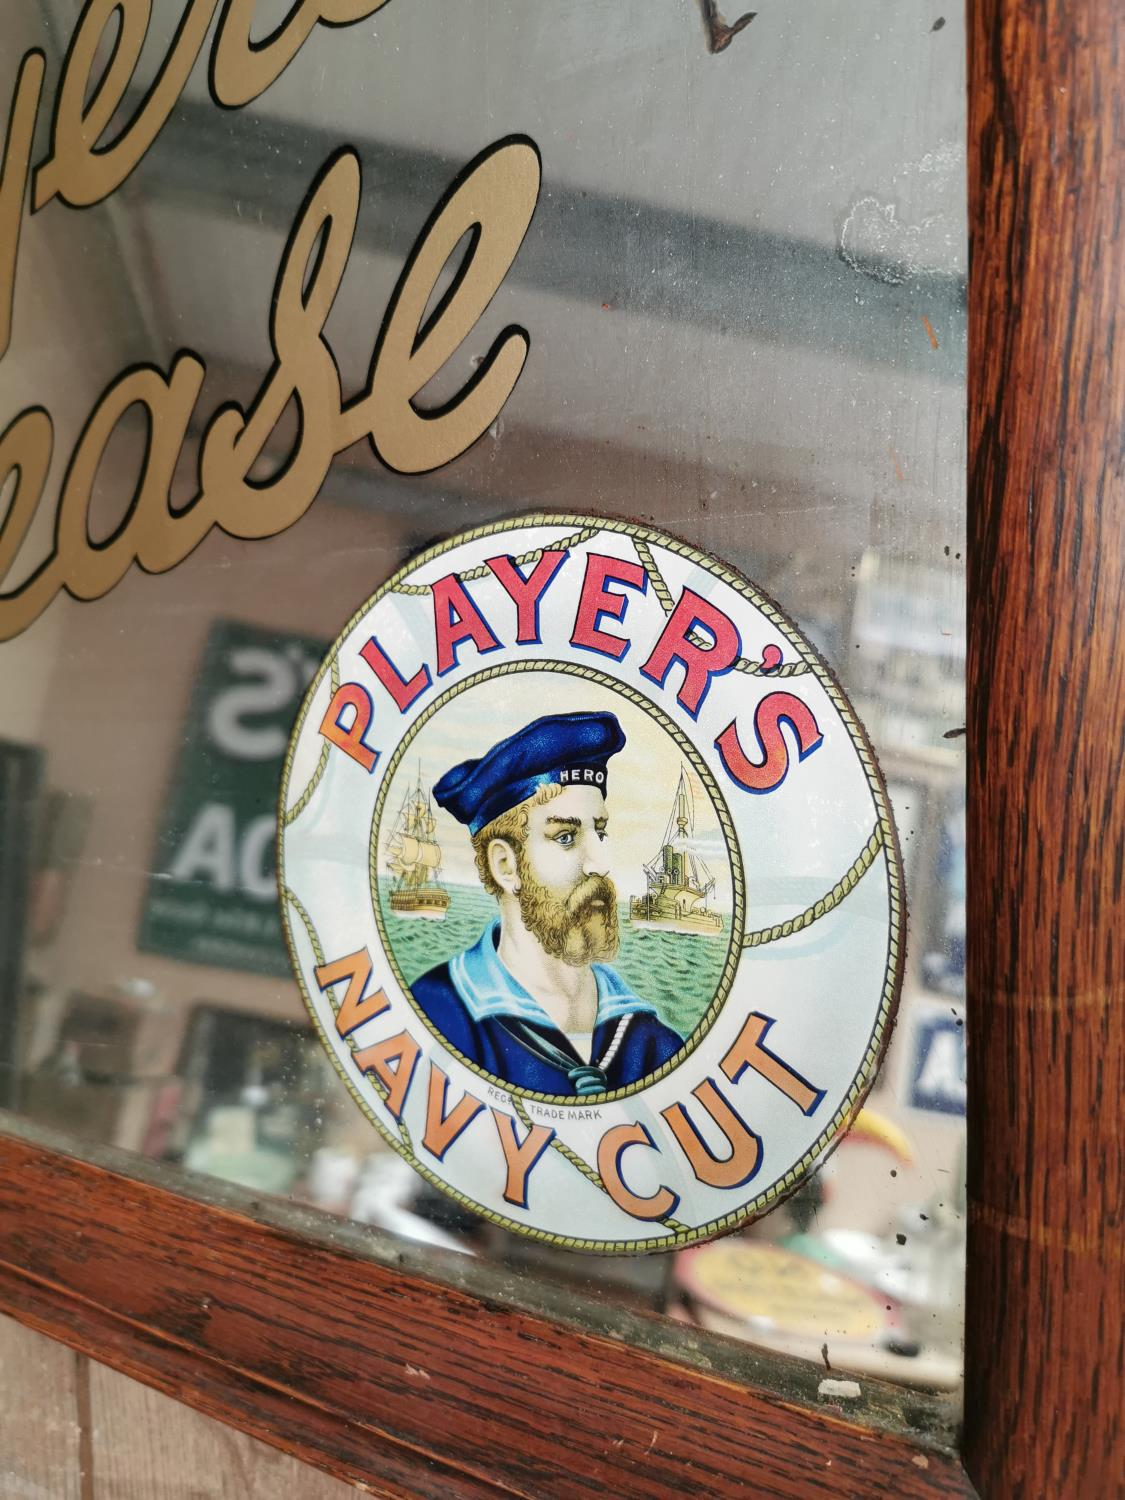 Players Please Navy Cut advertising mirror. - Image 2 of 3